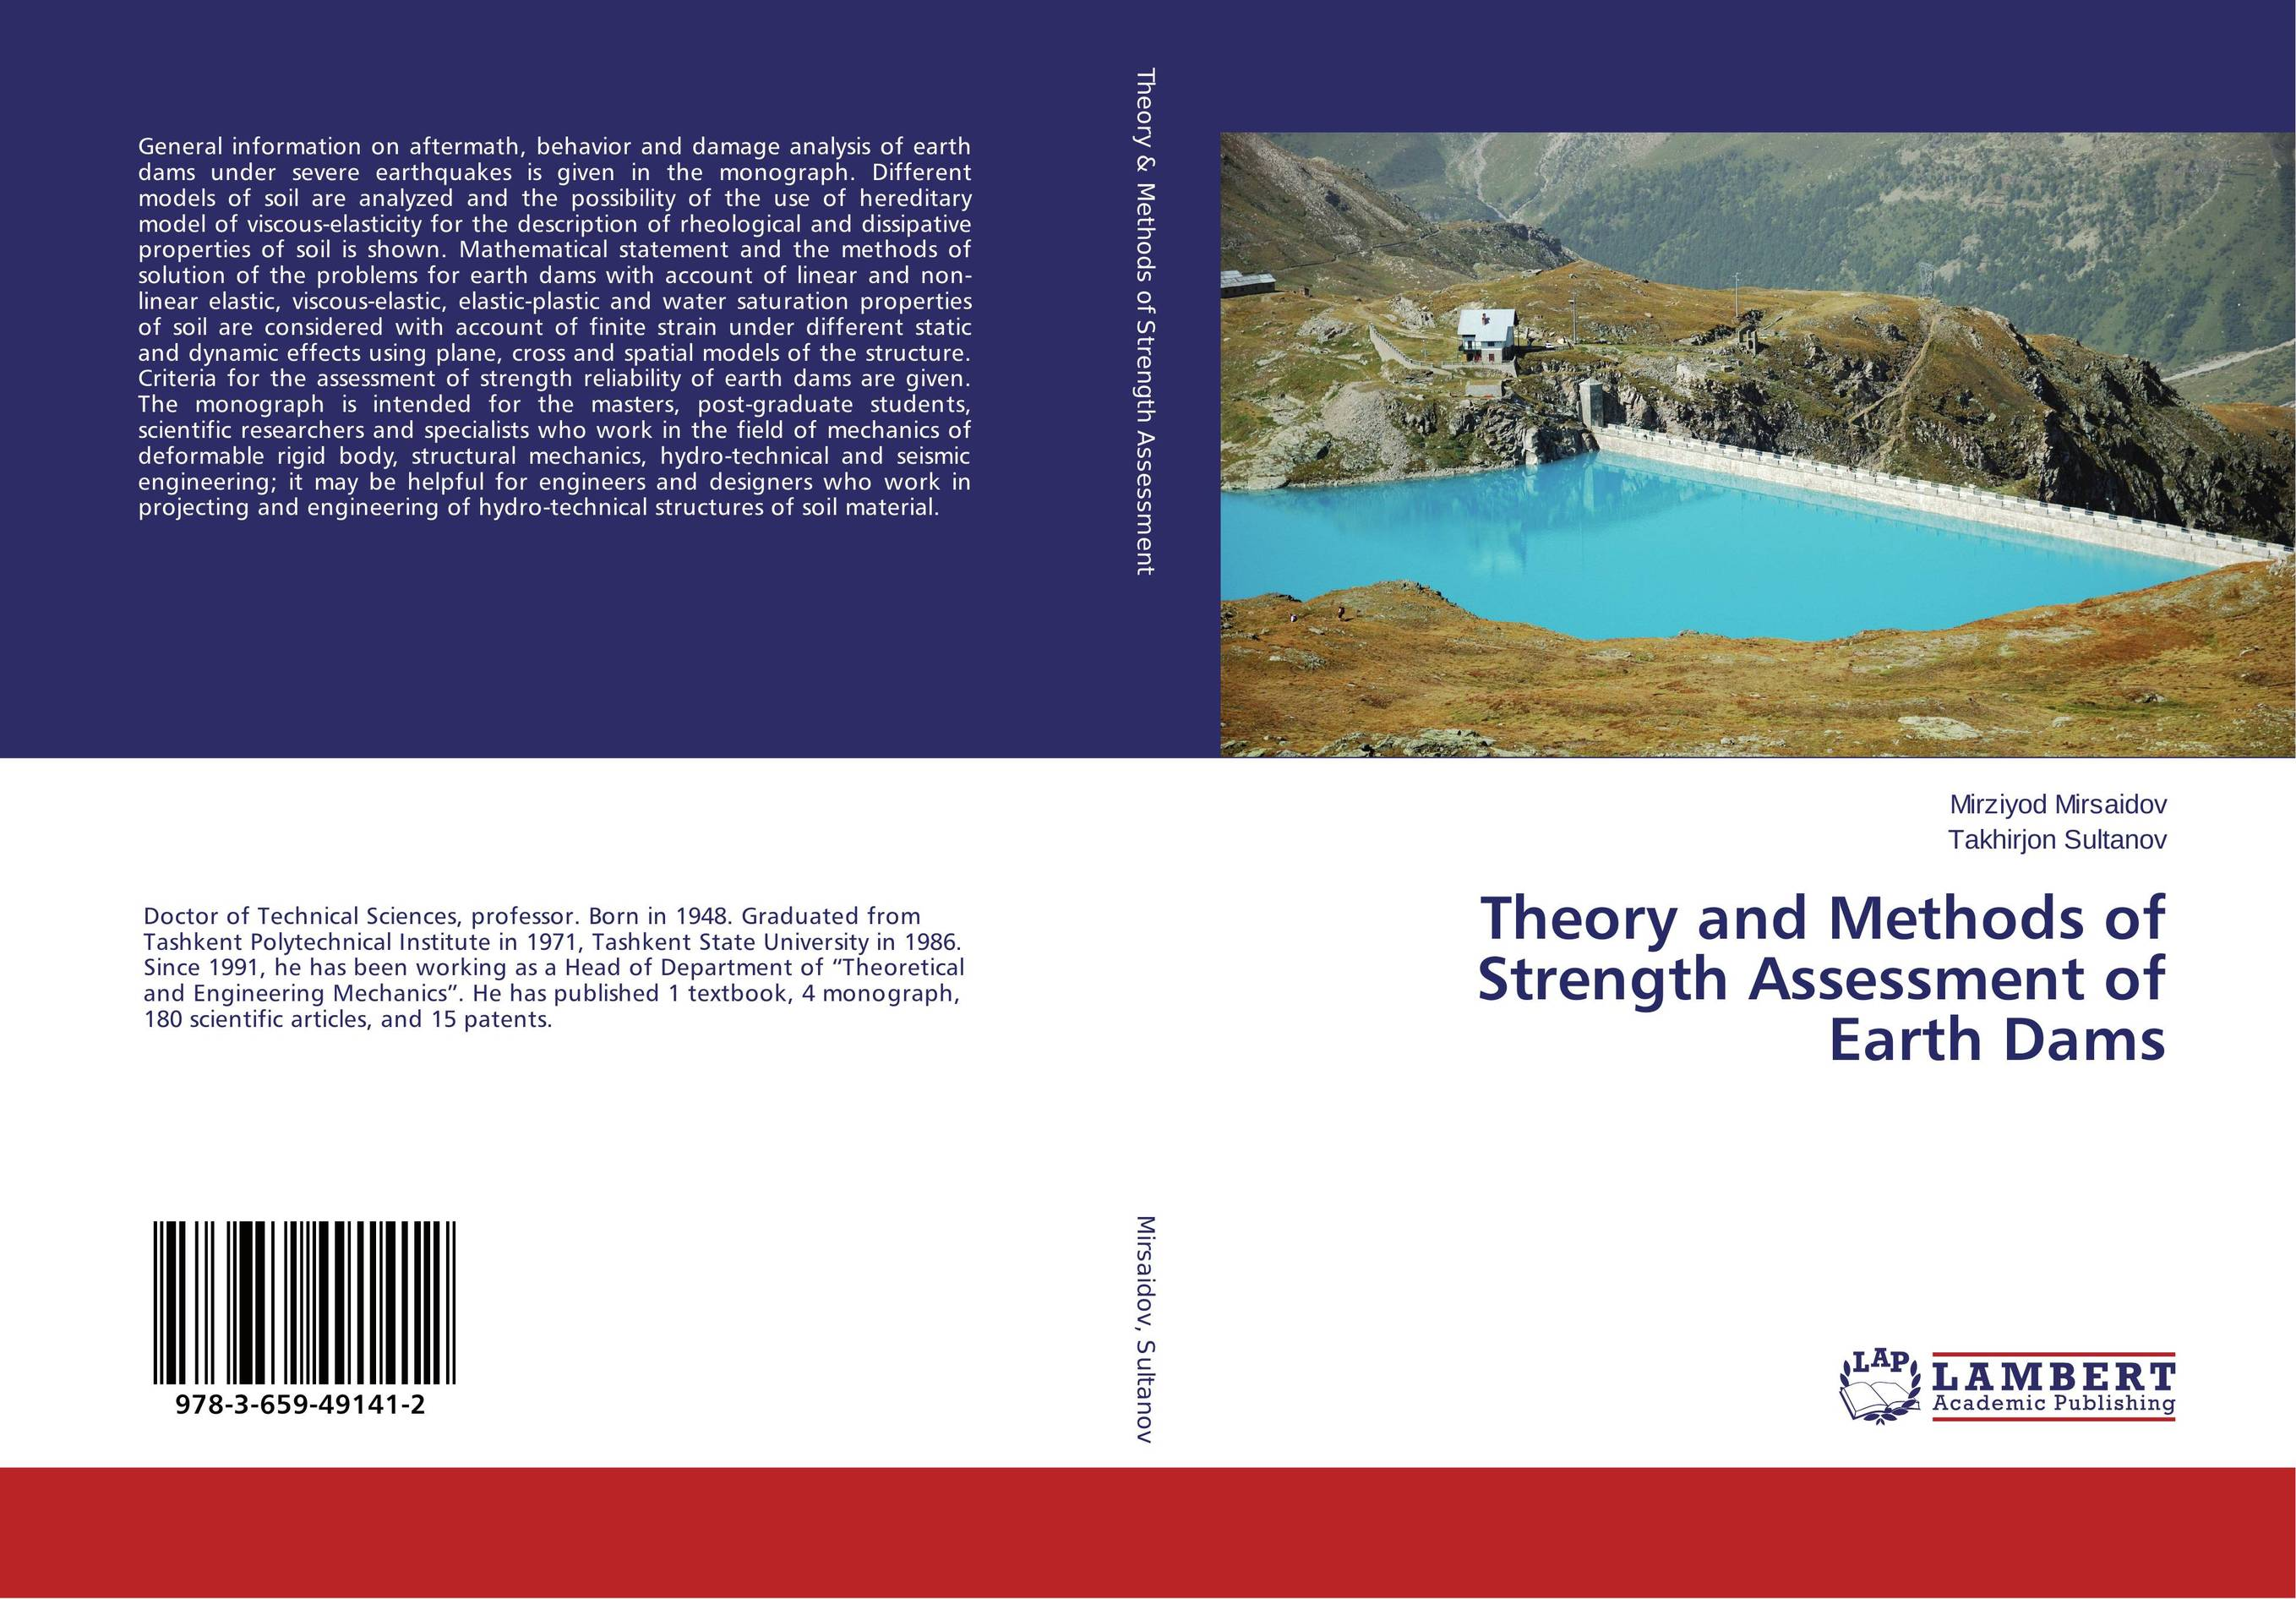 Theory and Methods of Strength Assessment of Earth Dams non linear theory of elasticity and optimal design